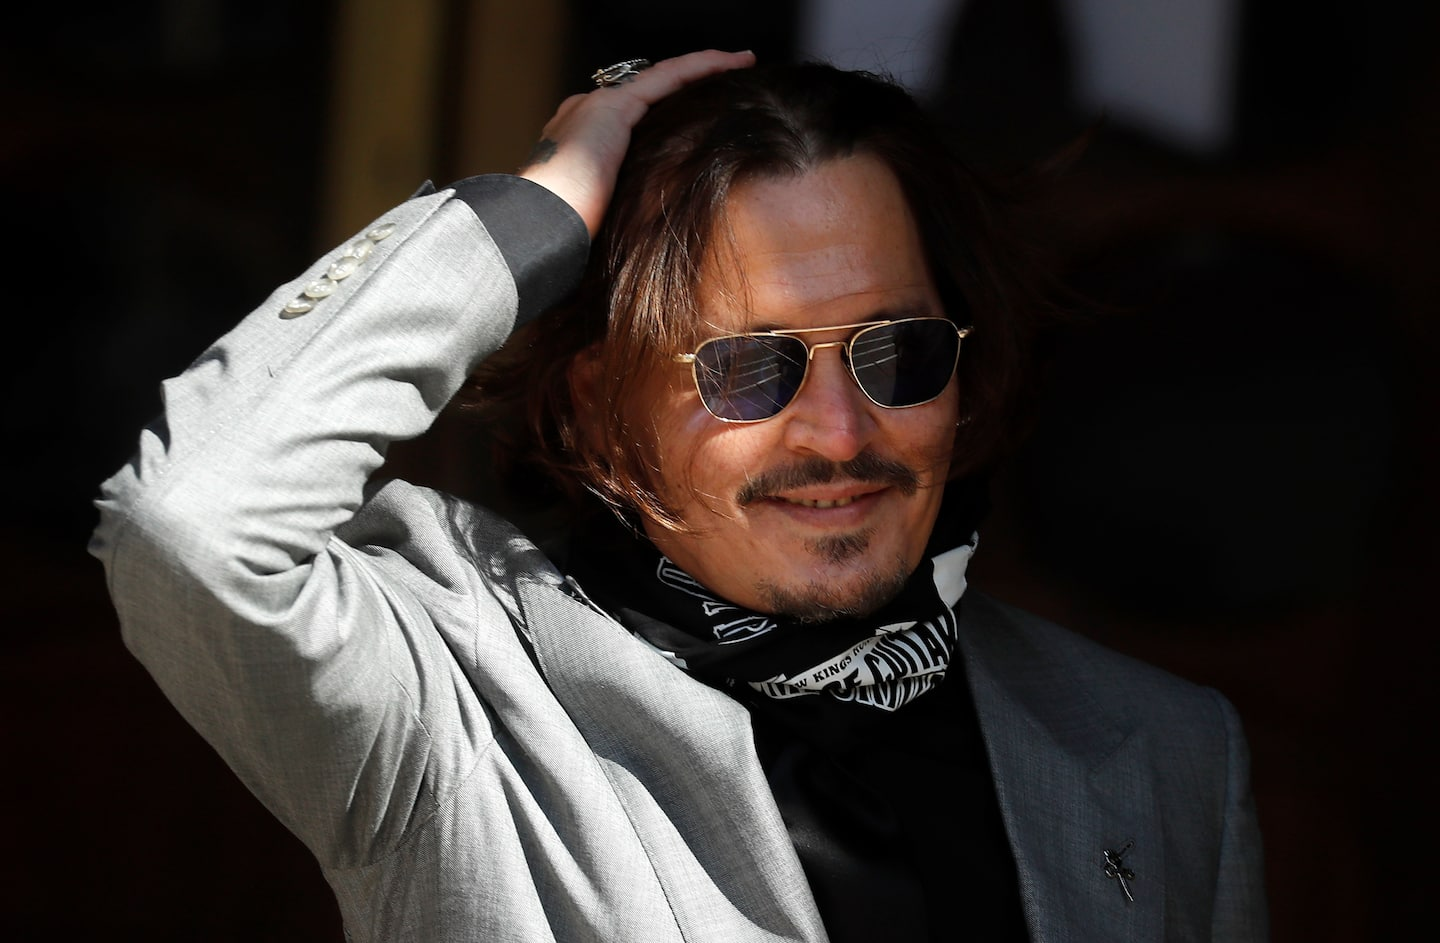 Johnny Depp loses defamation suit against Sun tabloid over wife beater accusation